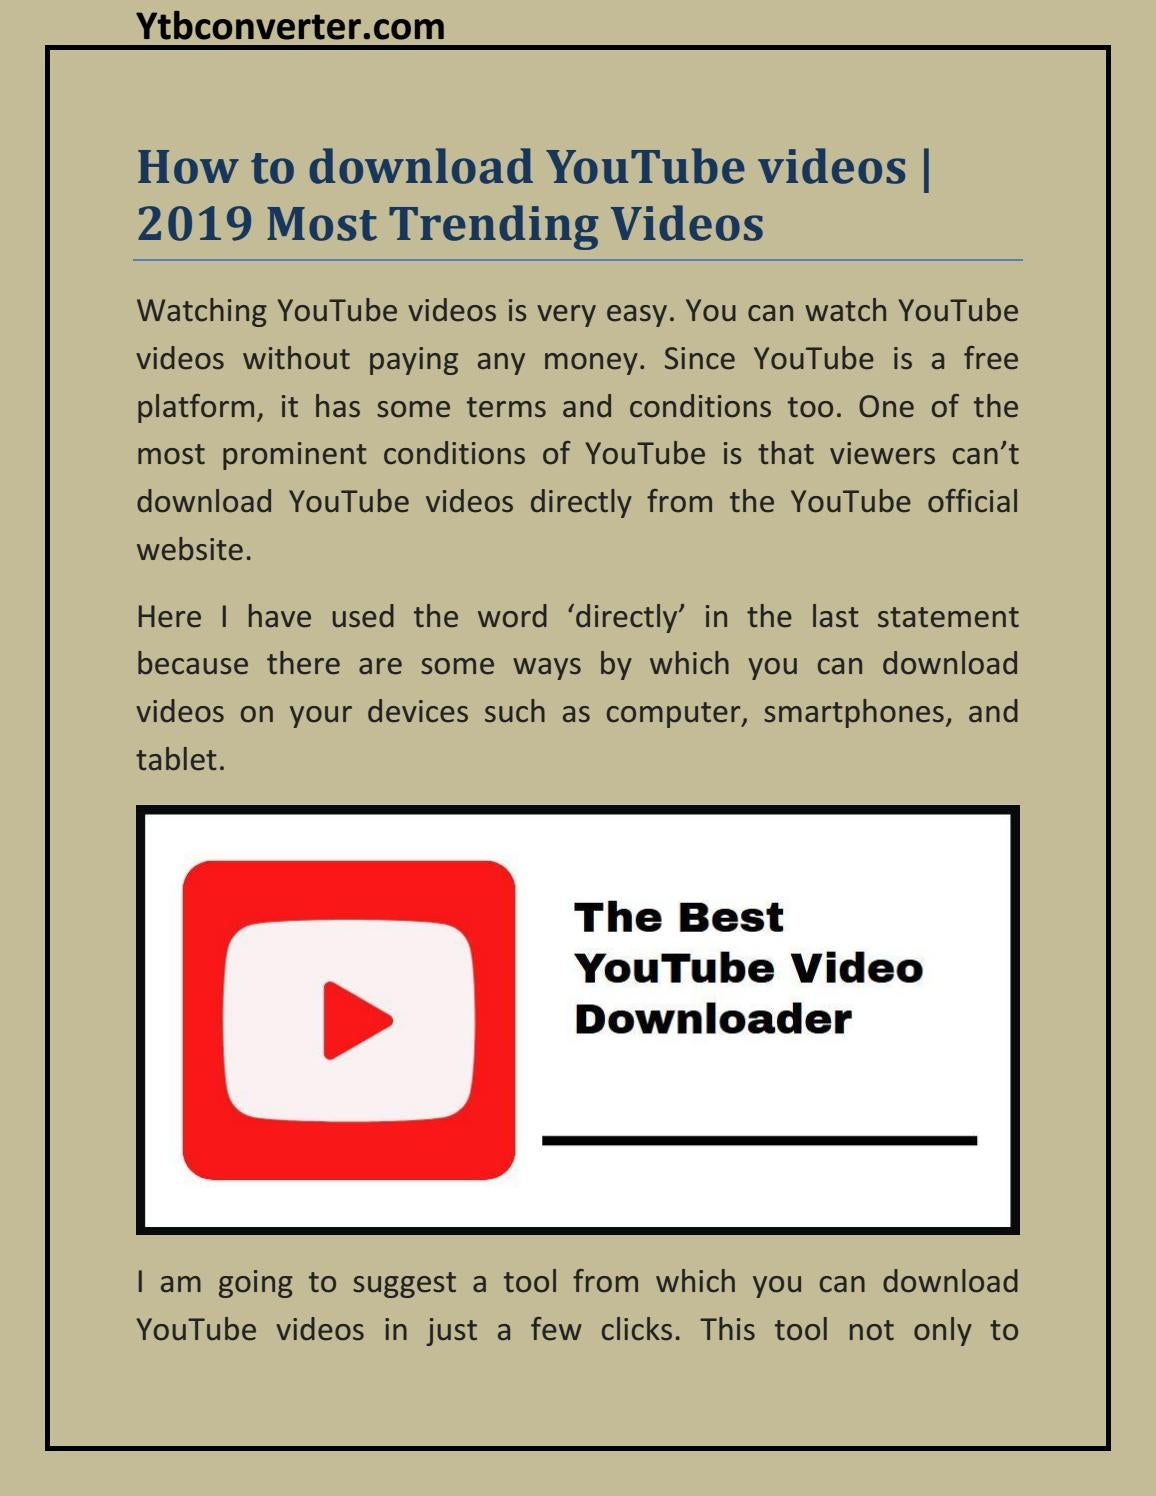 How to download YouTube videos | 2019 Most Trending Videos